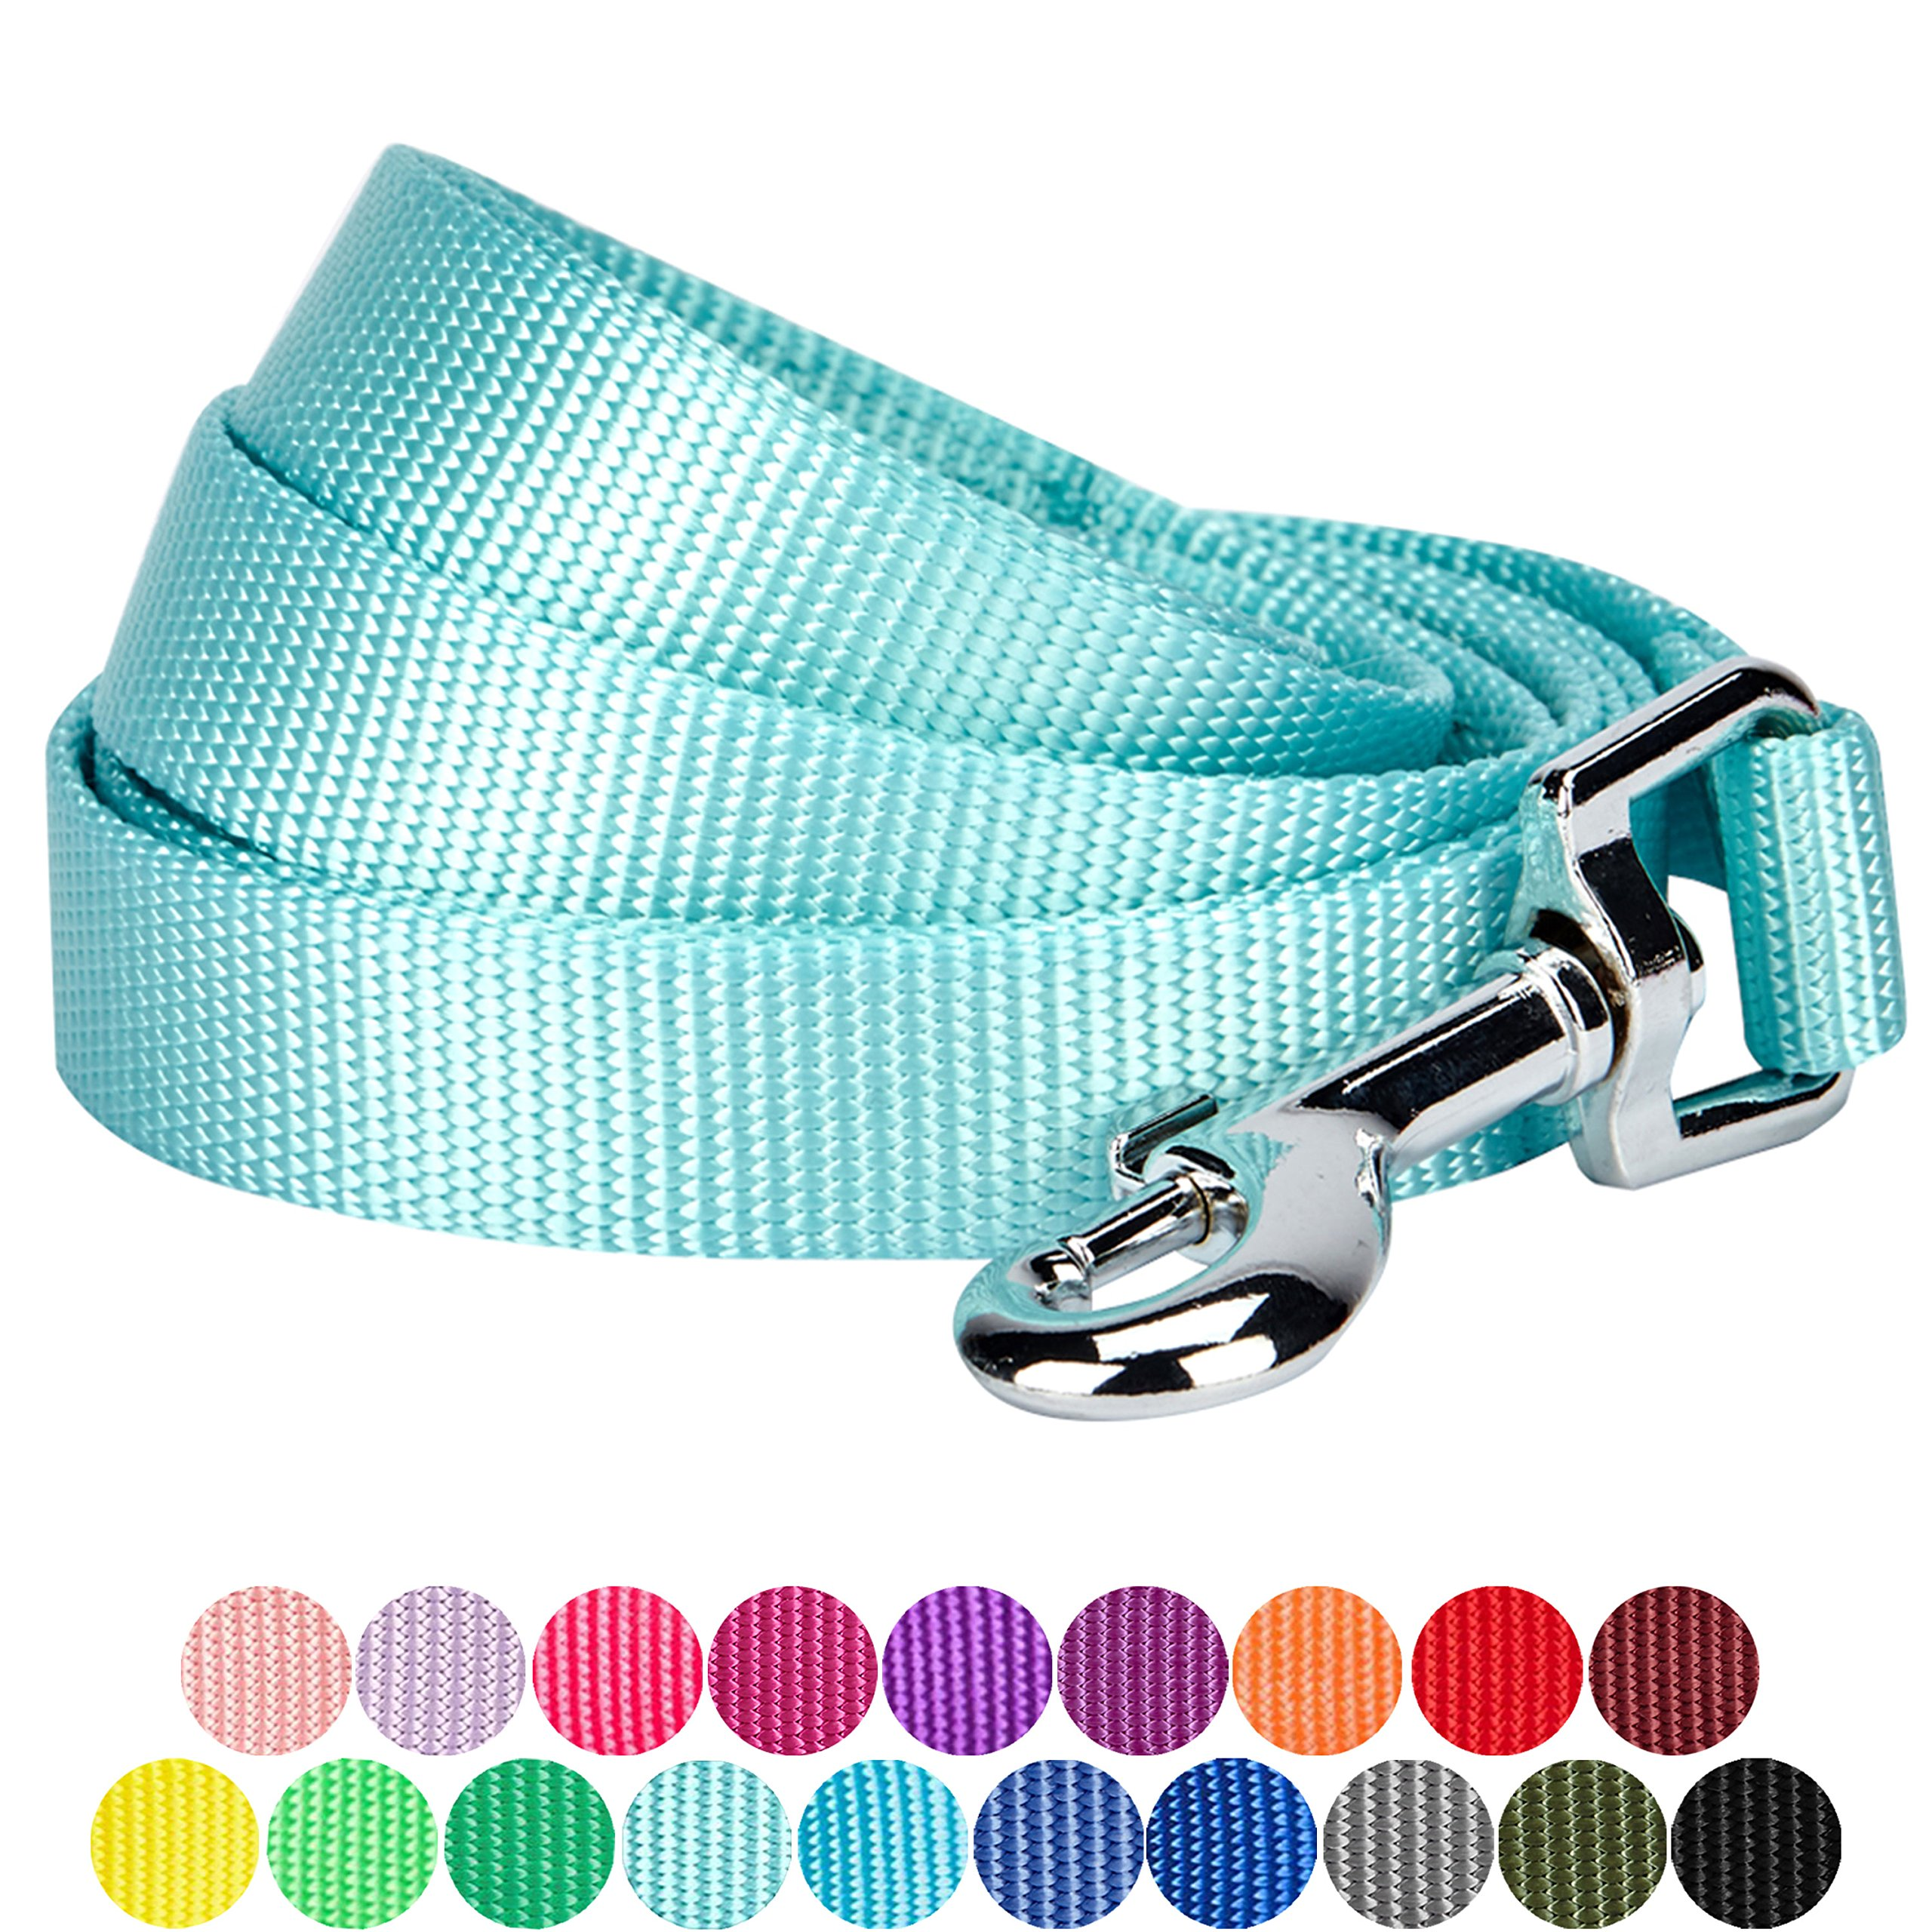 Blueberry Pet 19 Colors Durable Classic Dog Leash 5 ft x 5/8'', Mint Blue, Small, Basic Nylon Leashes for Dogs by Blueberry Pet (Image #1)